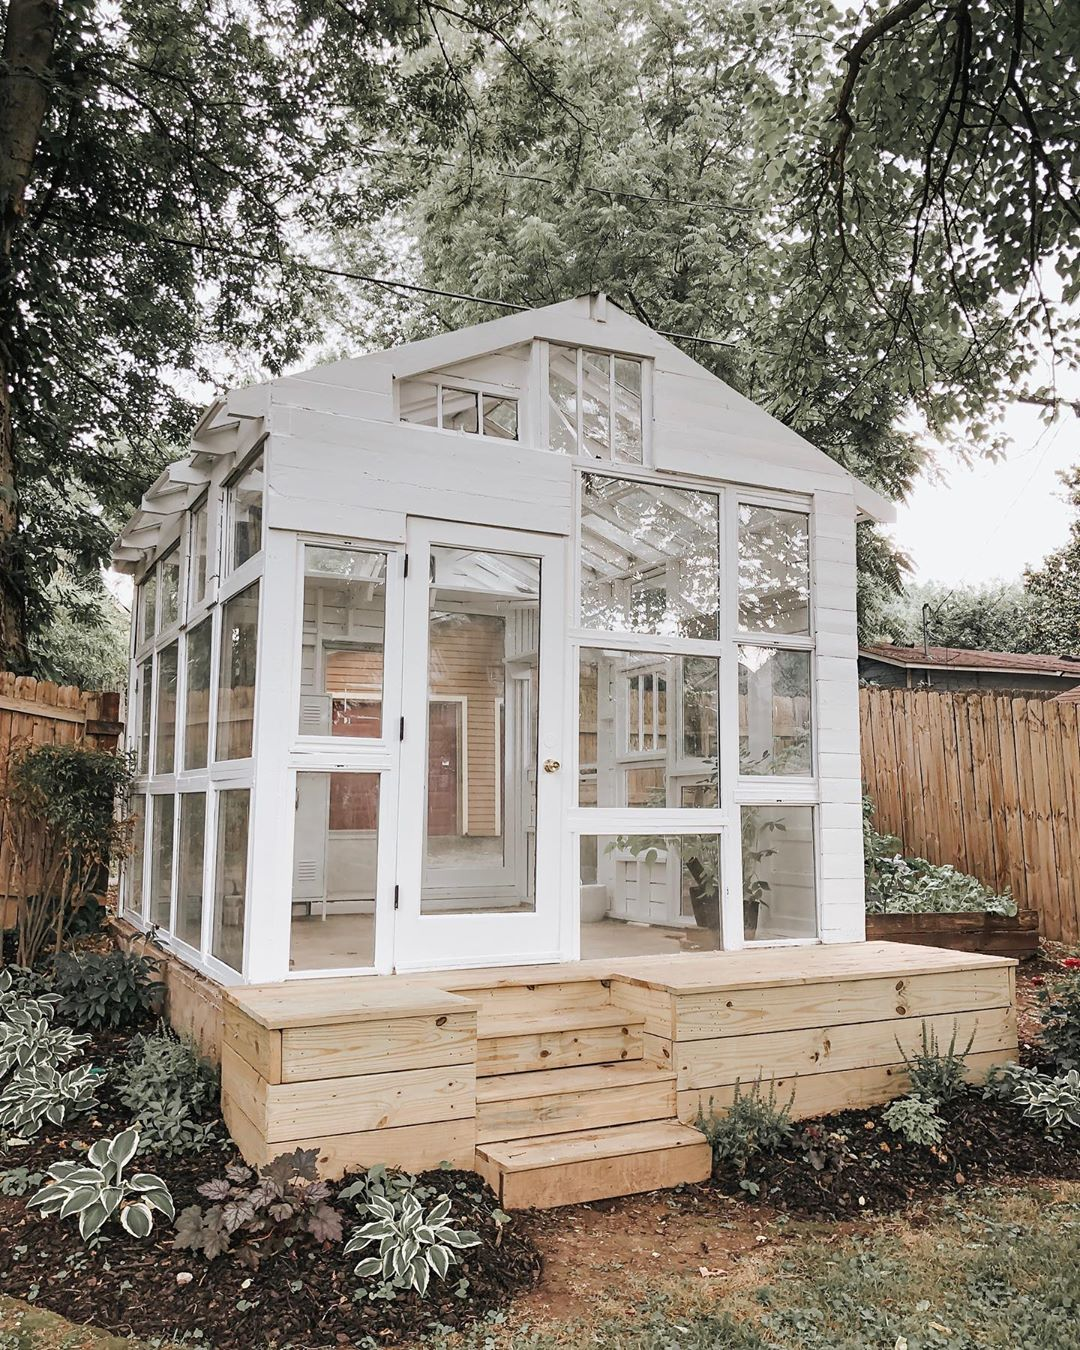 Backyard greenhouse made from vintage windows. Come explore She Shed Chic, Potting Shed & Backyard Inspiration.